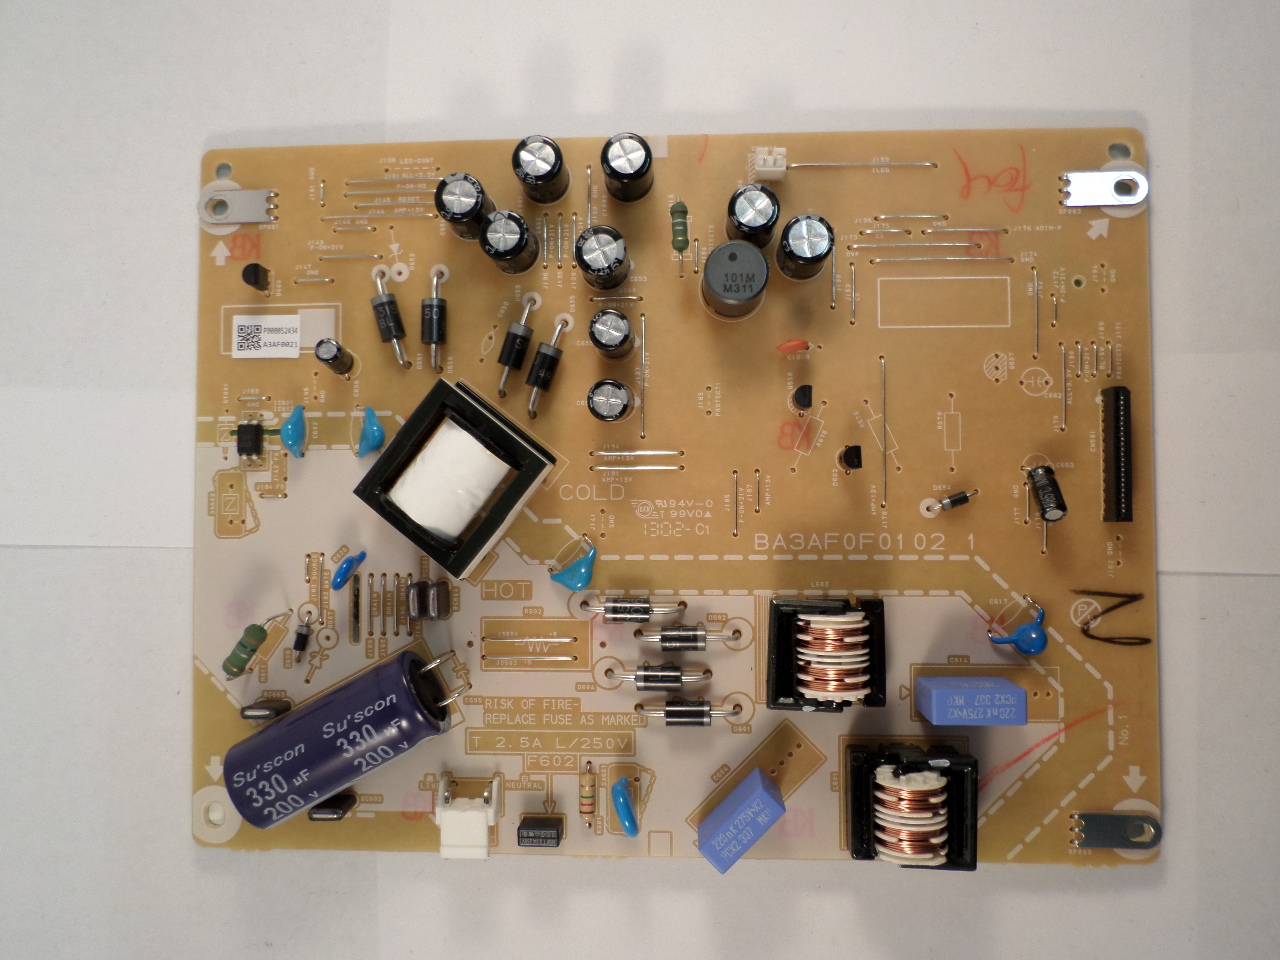 Emerson Tv Power Supply Board - Year of Clean Water